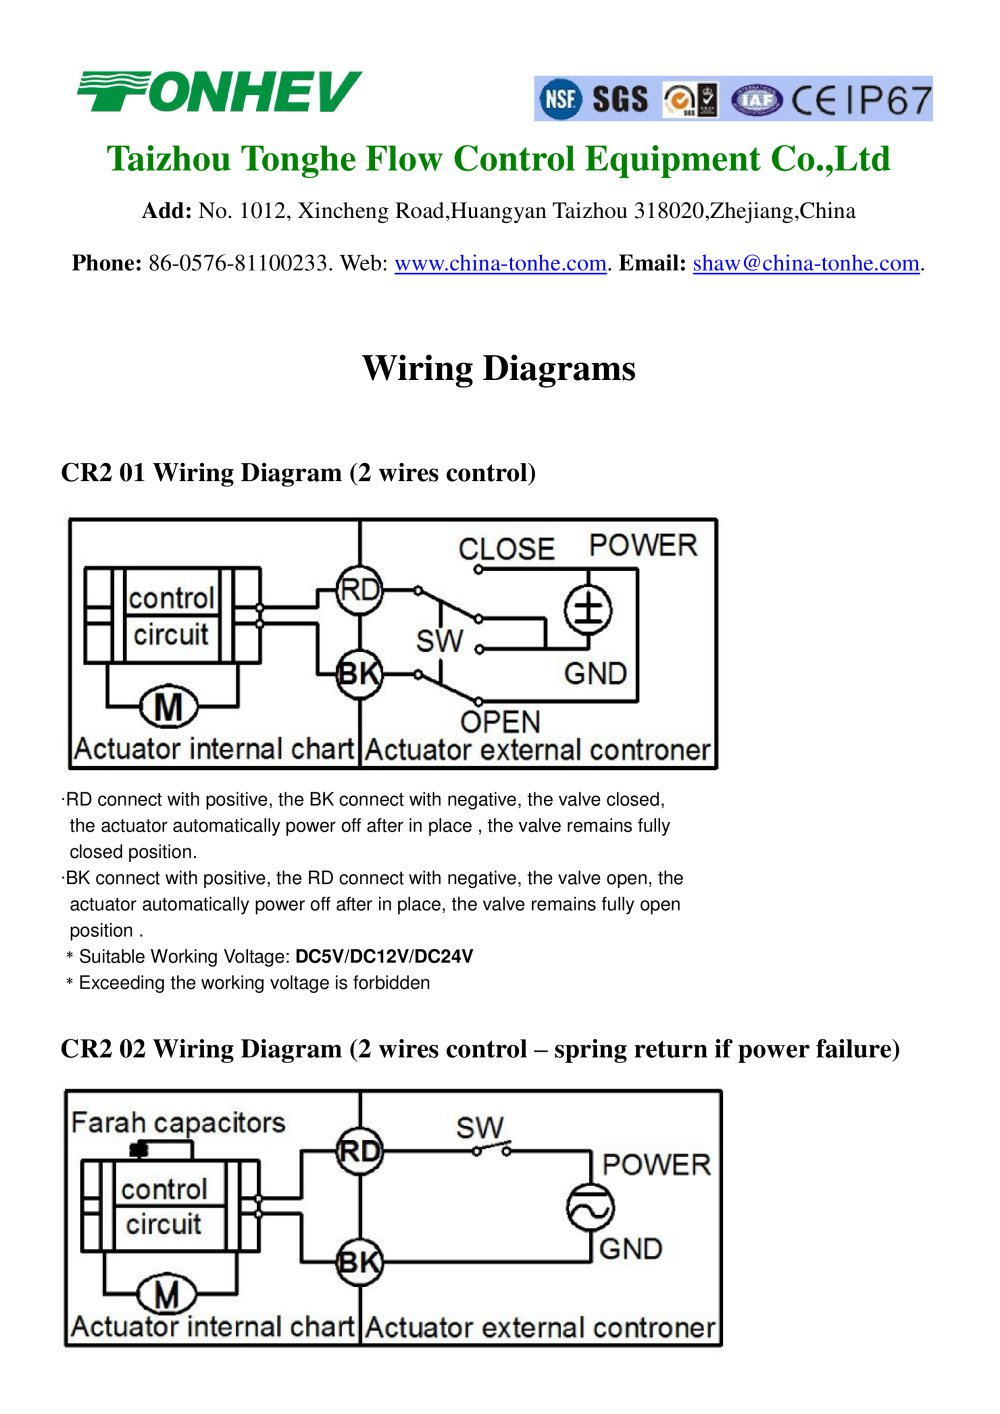 Tonhe Motorized Valve Wiring Diagrams Taizhou Flow Control Xlr To 1 4 Diagram Pages